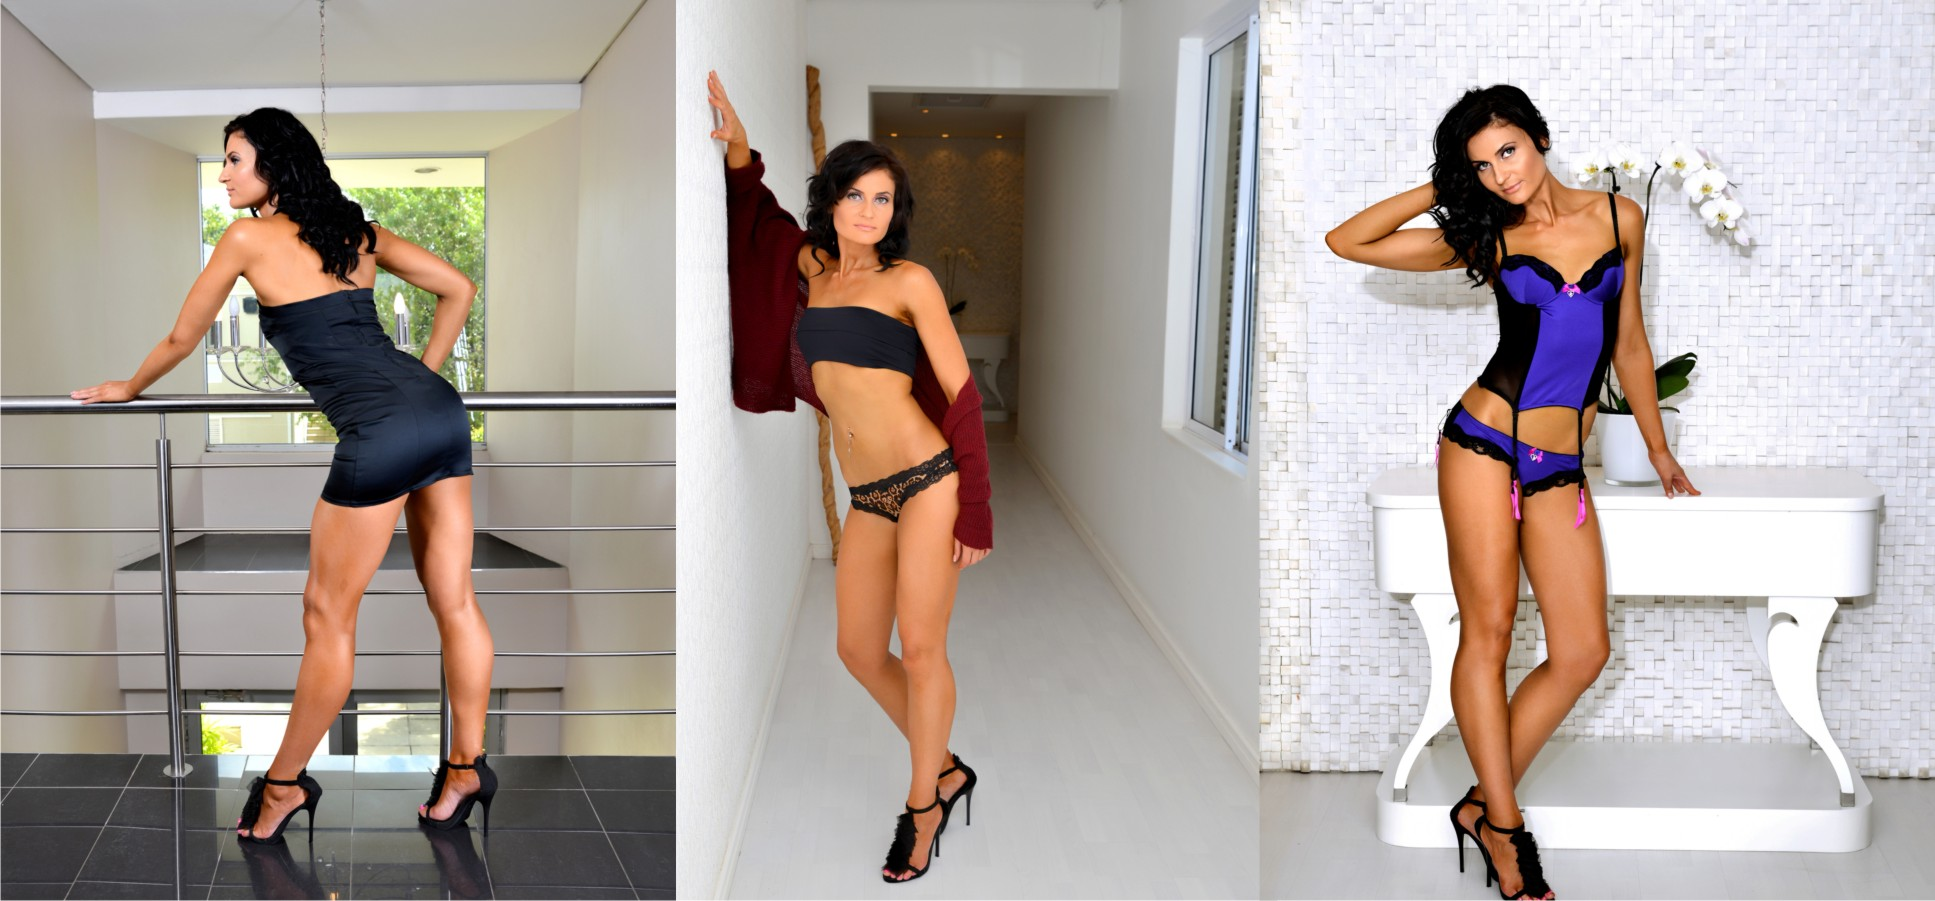 Sylvia is our featured LW Babe of the Week